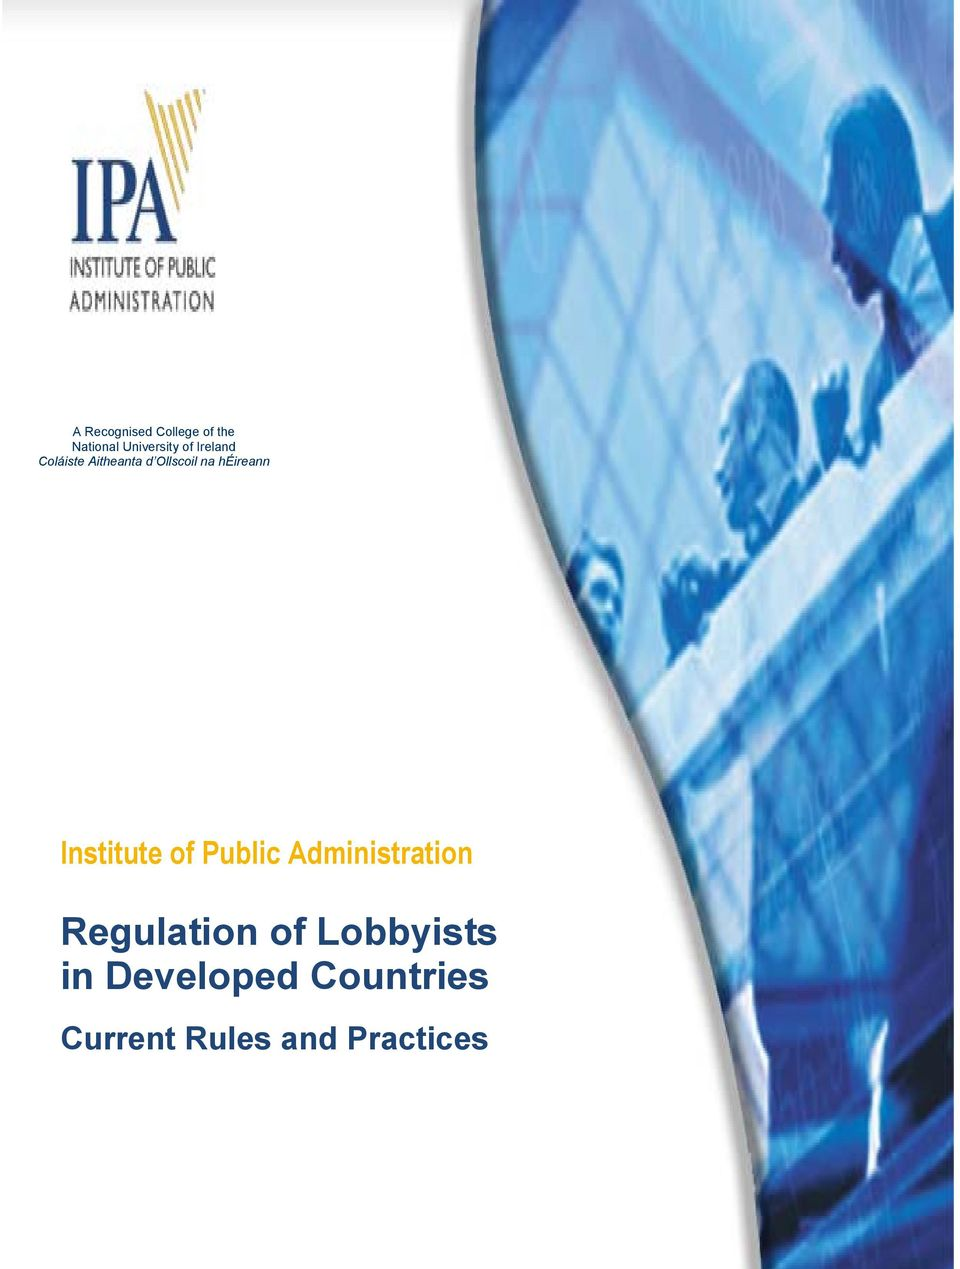 Regulation of Lobbyists in Developed Countries Current Rules and